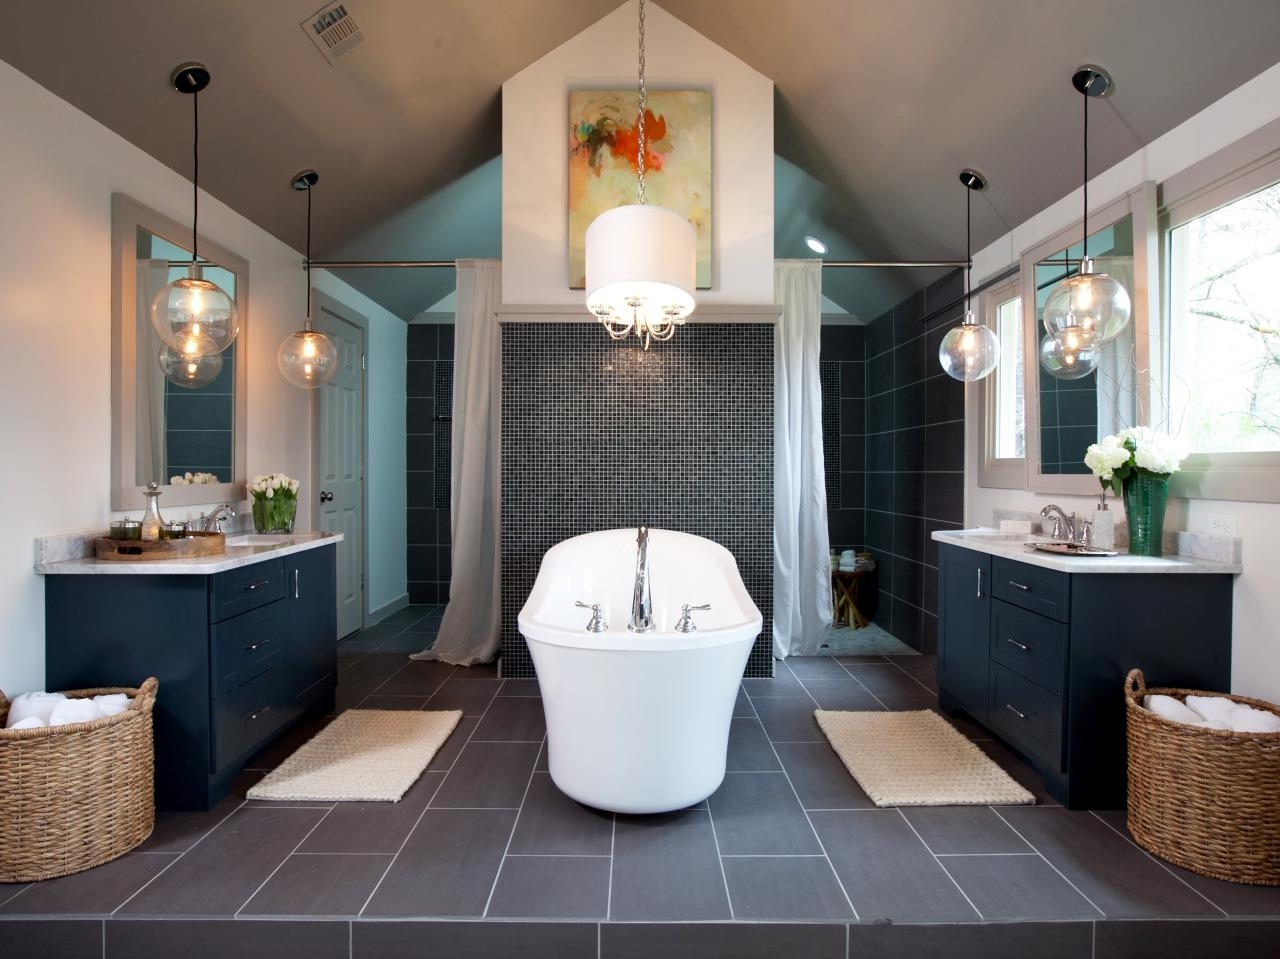 Bathroom: Modern Bathroom Chandeliers With Gold Frame In Small With Favorite Modern Bathroom Chandeliers (View 1 of 20)